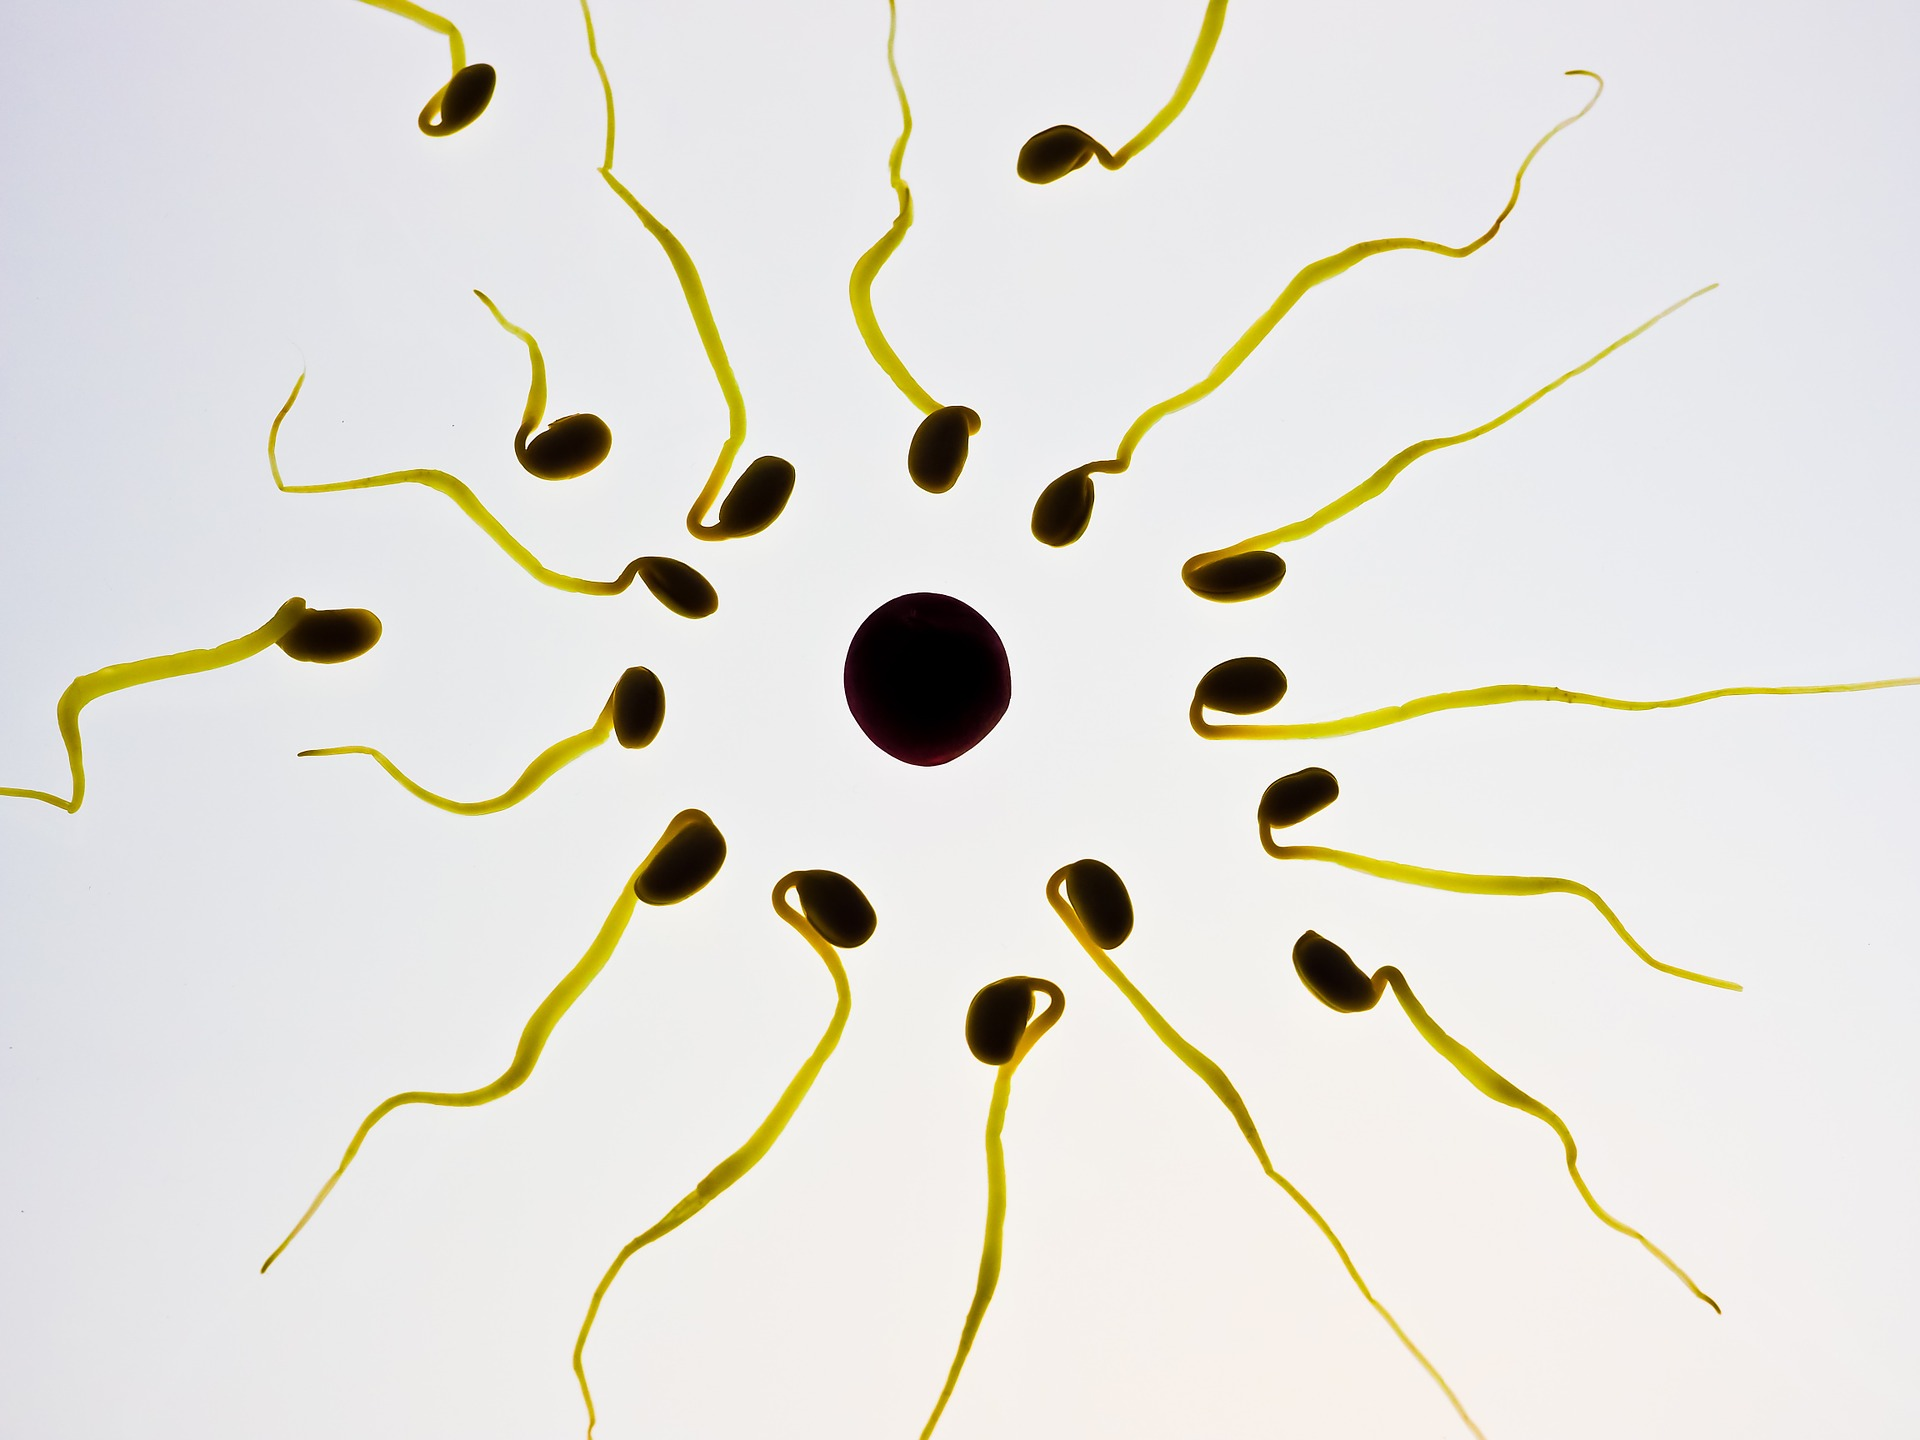 A Chinese folk contraceptive could give rise to unisex 'molecular condoms'